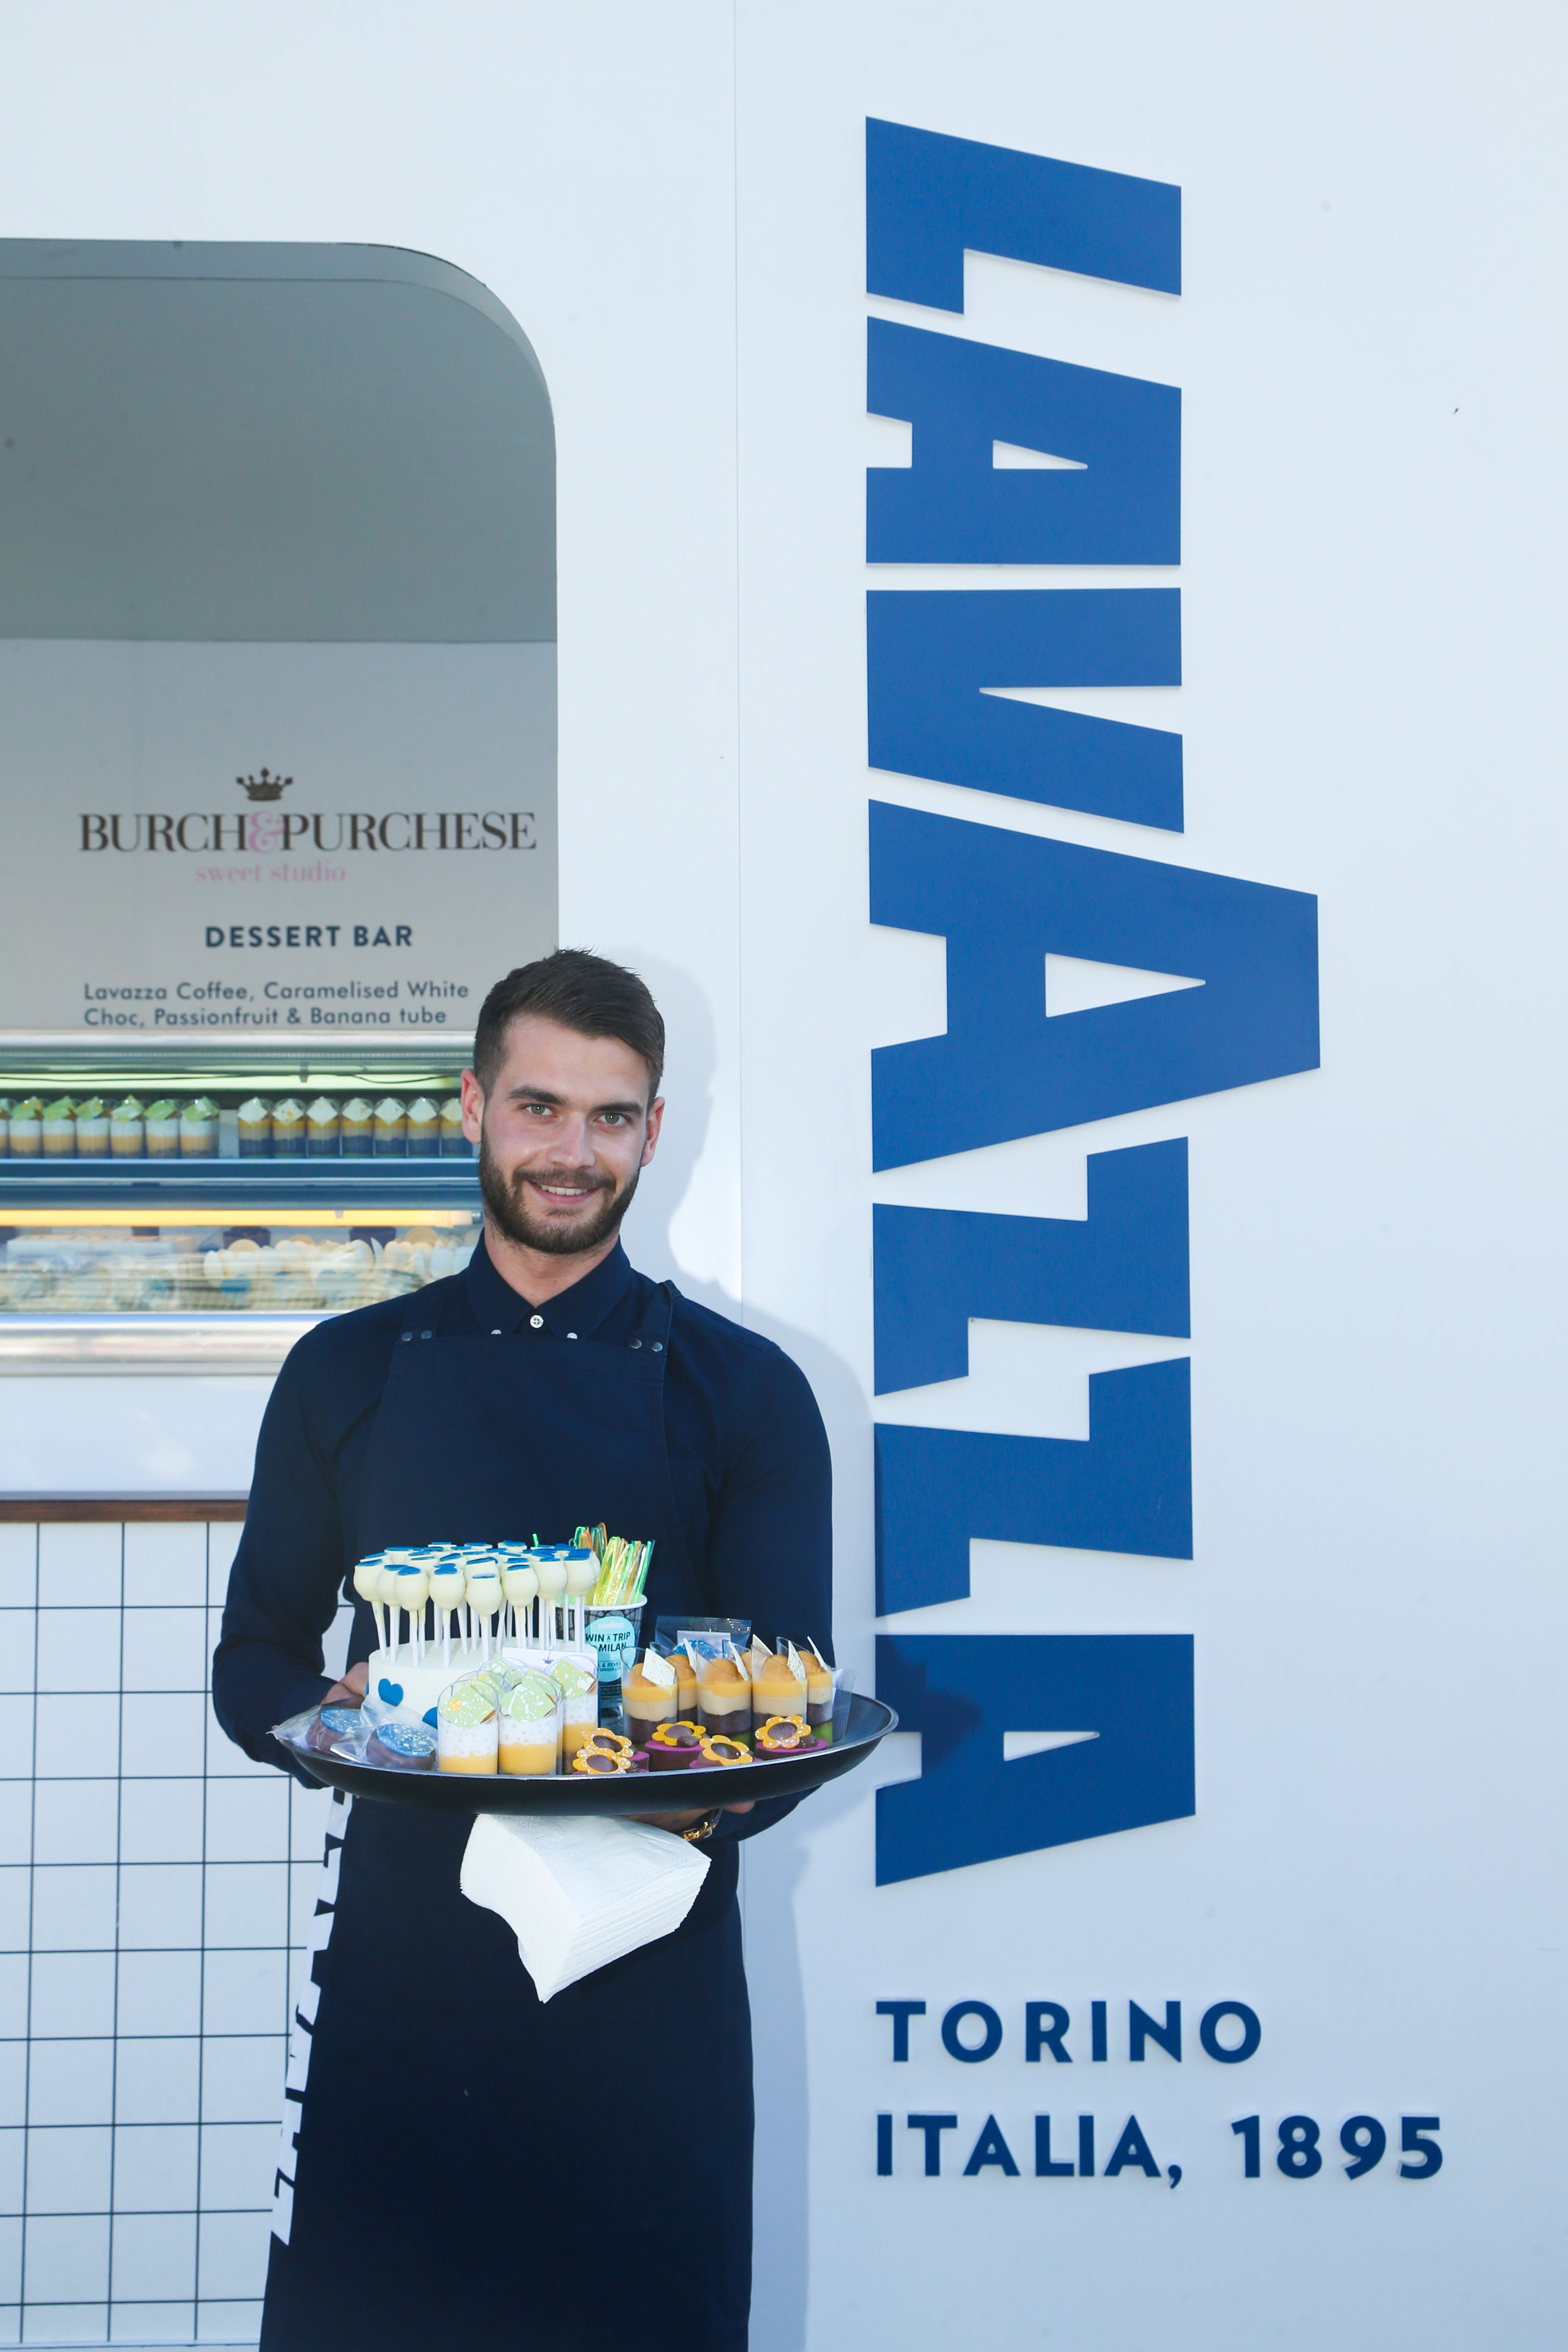 lavazza-vamff-2017-day-1-cafe-and-desserts.jpg